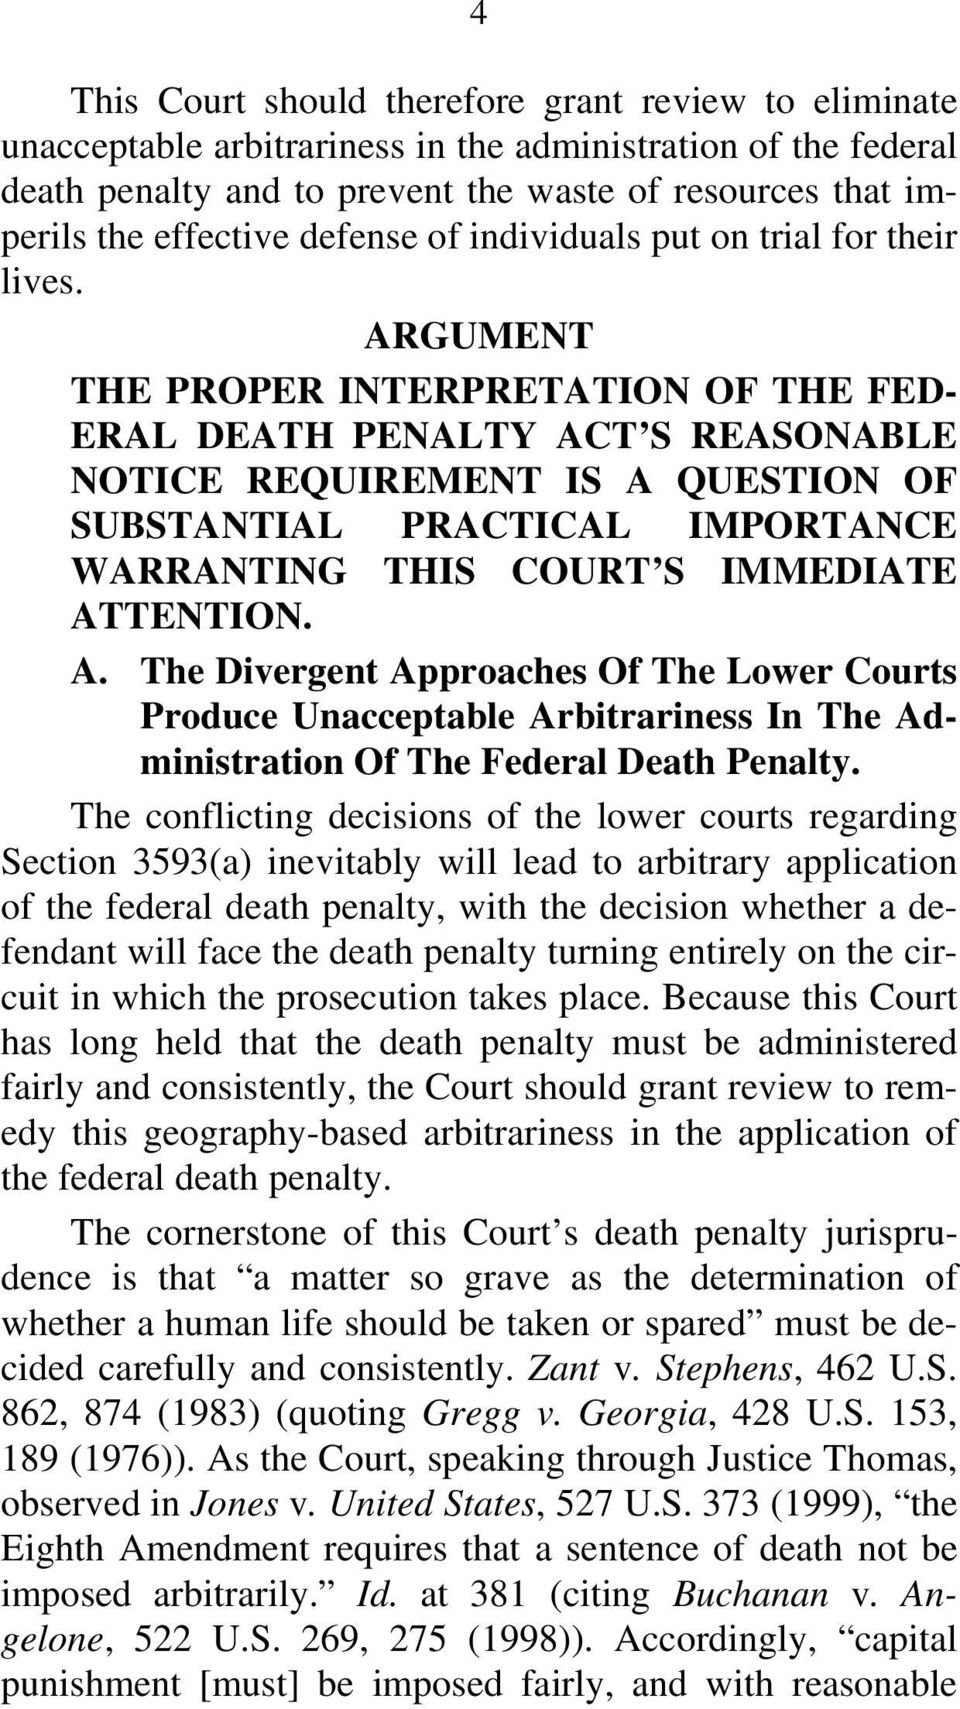 ARGUMENT THE PROPER INTERPRETATION OF THE FED- ERAL DEATH PENALTY ACT S REASONABLE NOTICE REQUIREMENT IS A QUESTION OF SUBSTANTIAL PRACTICAL IMPORTANCE WARRANTING THIS COURT S IMMEDIATE ATTENTION. A. The Divergent Approaches Of The Lower Courts Produce Unacceptable Arbitrariness In The Administration Of The Federal Death Penalty.